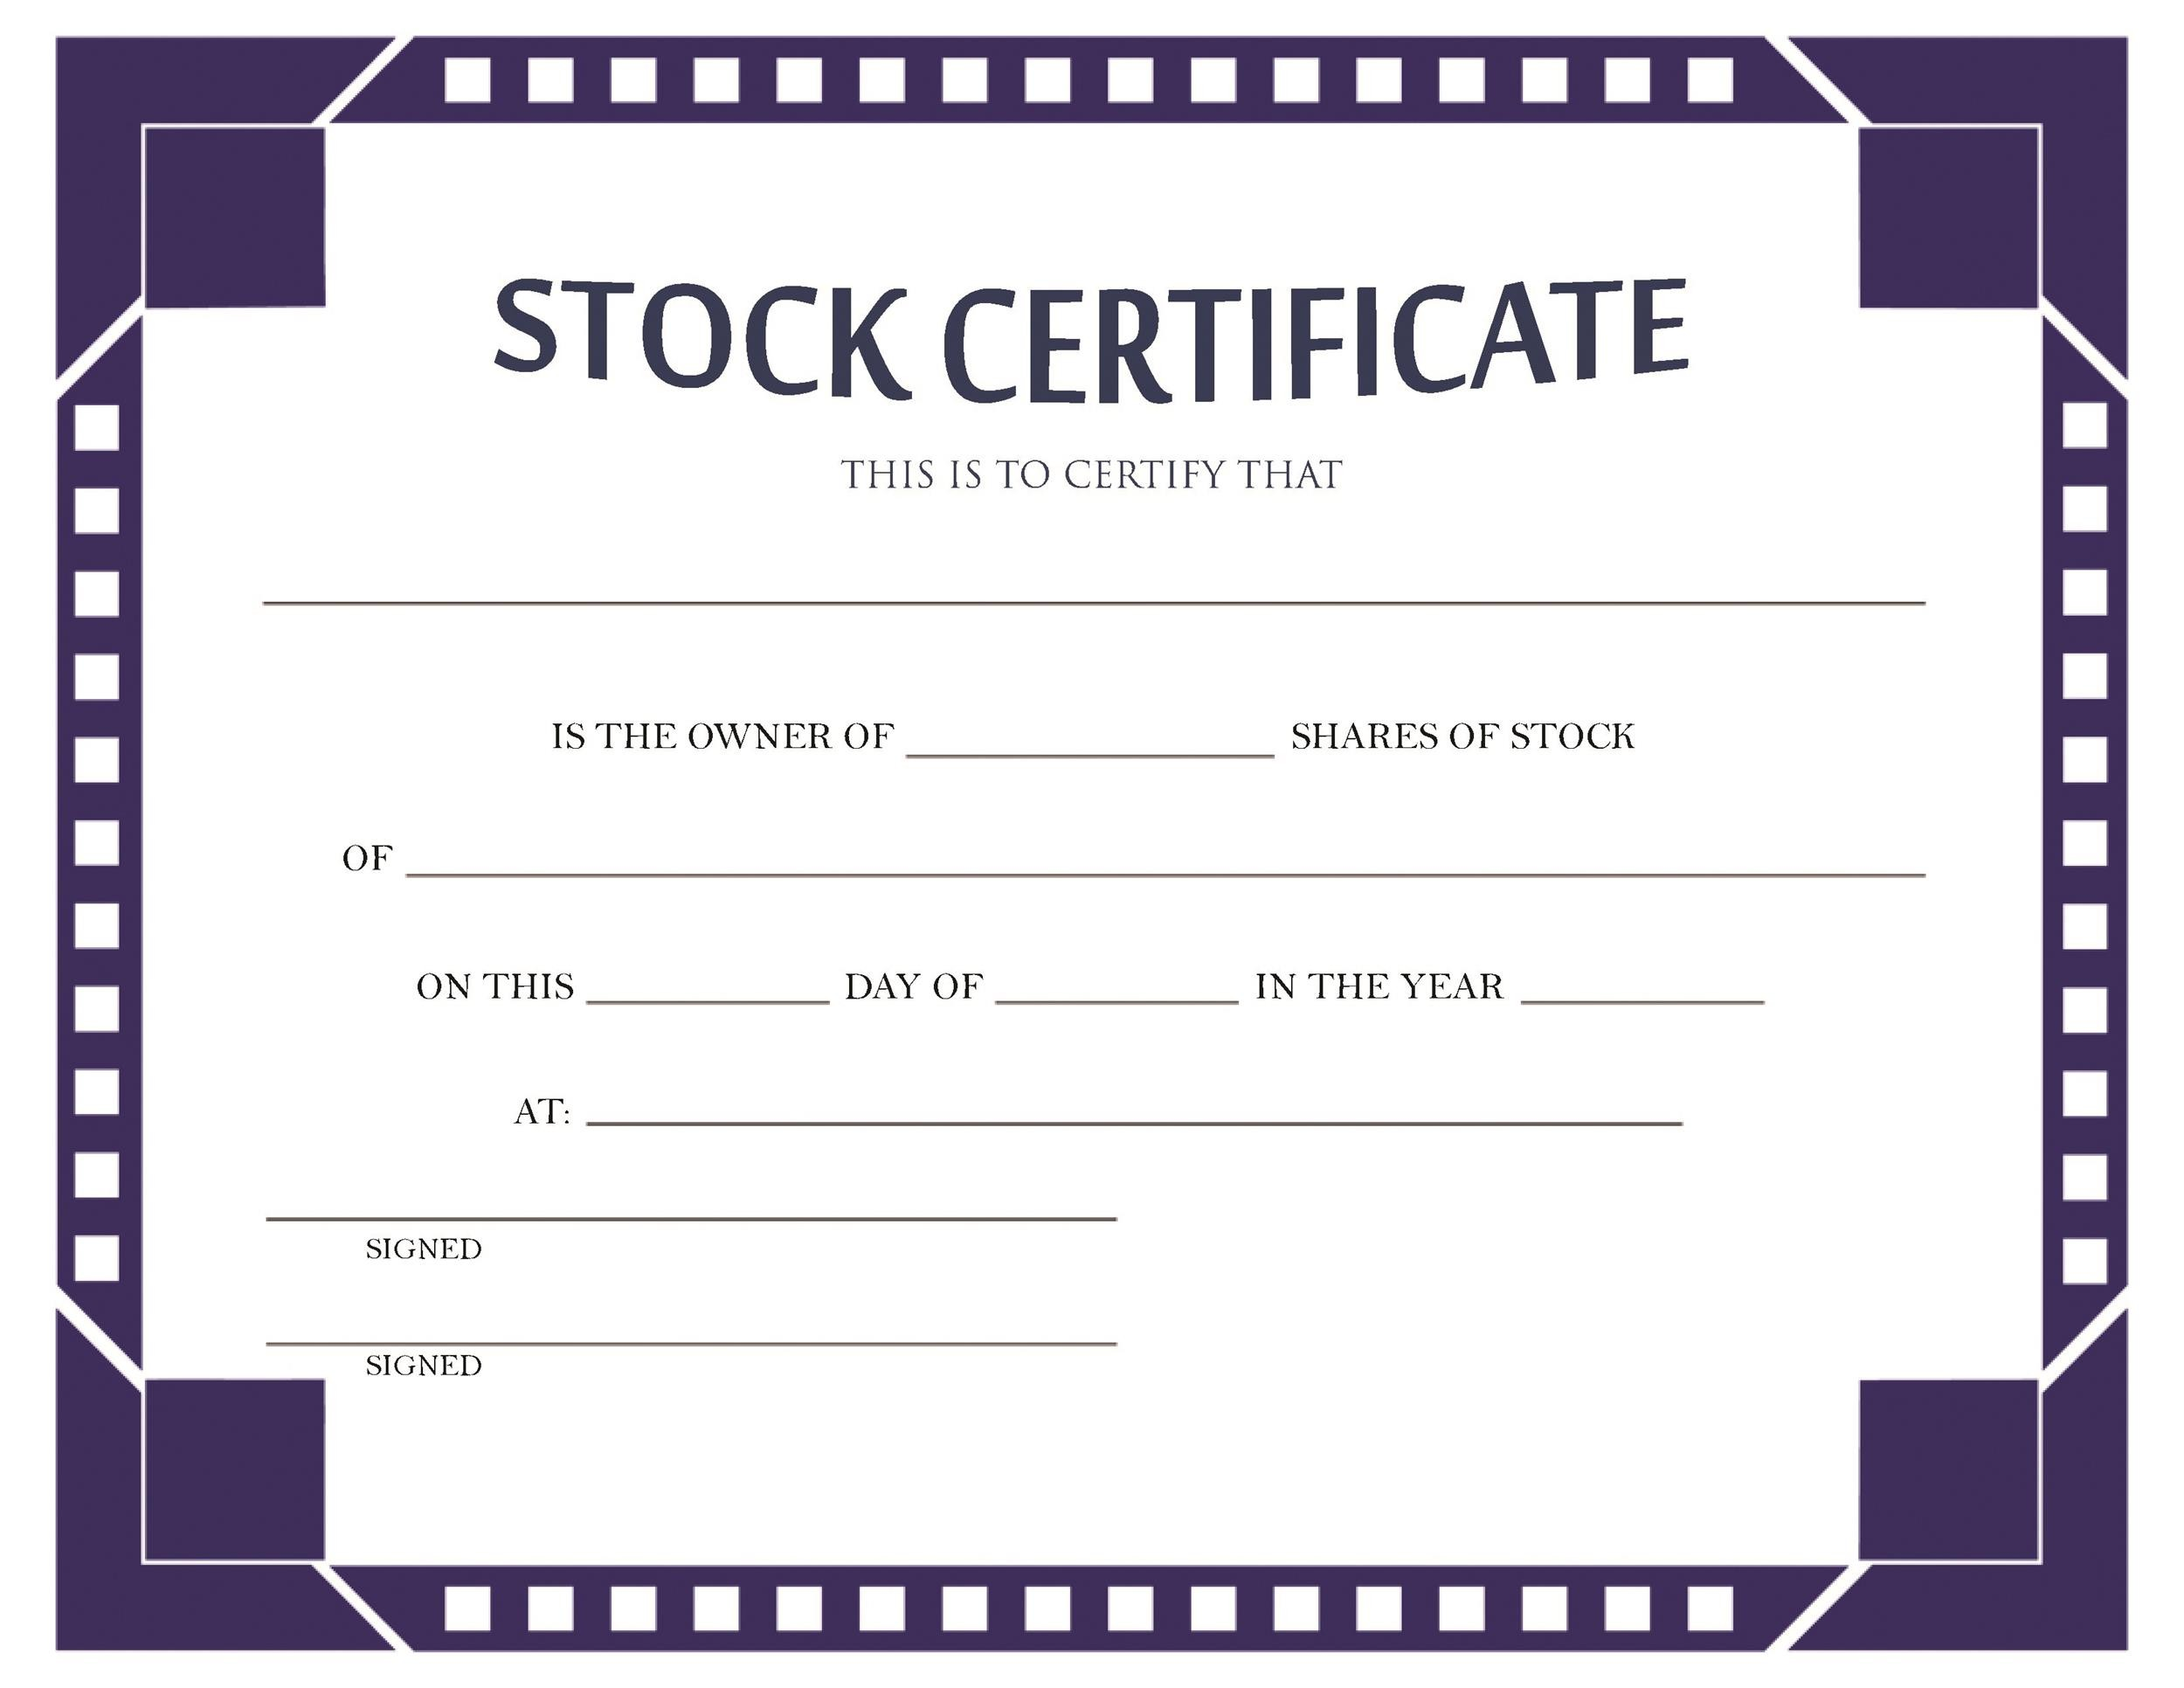 40+ Free Stock Certificate Templates (Word, PDF) ᐅ Template Lab